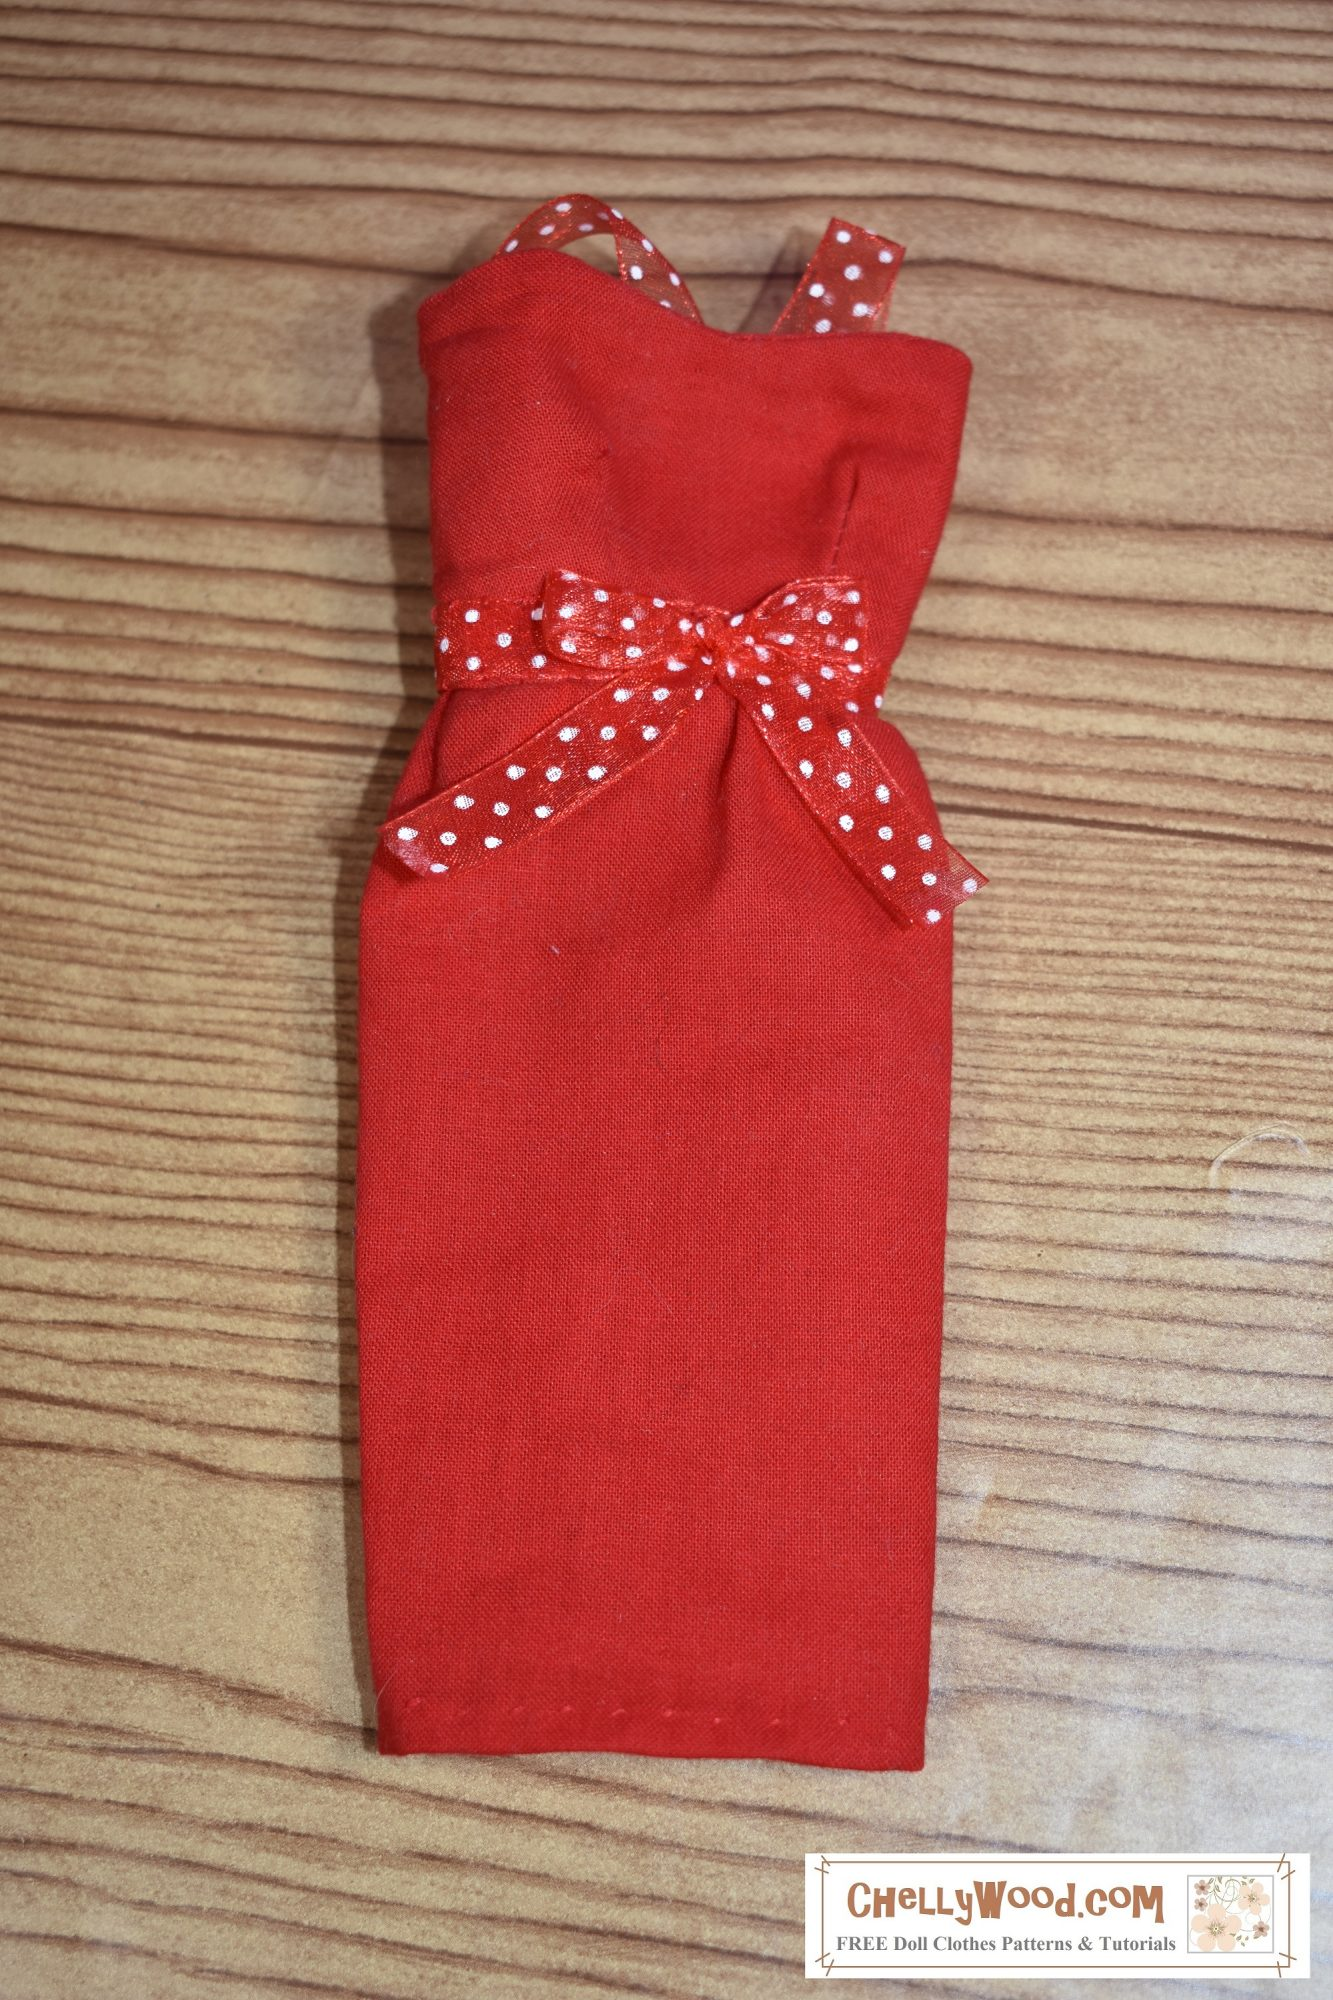 The image shows a red cotton pencil-skirt dress with an opaque ribbon tied around the waist. The ribbon is also red with white polka dots. The straps on this pencil-skirt dress's bodice match the polka-dot ribbon tied around the dress's waist.